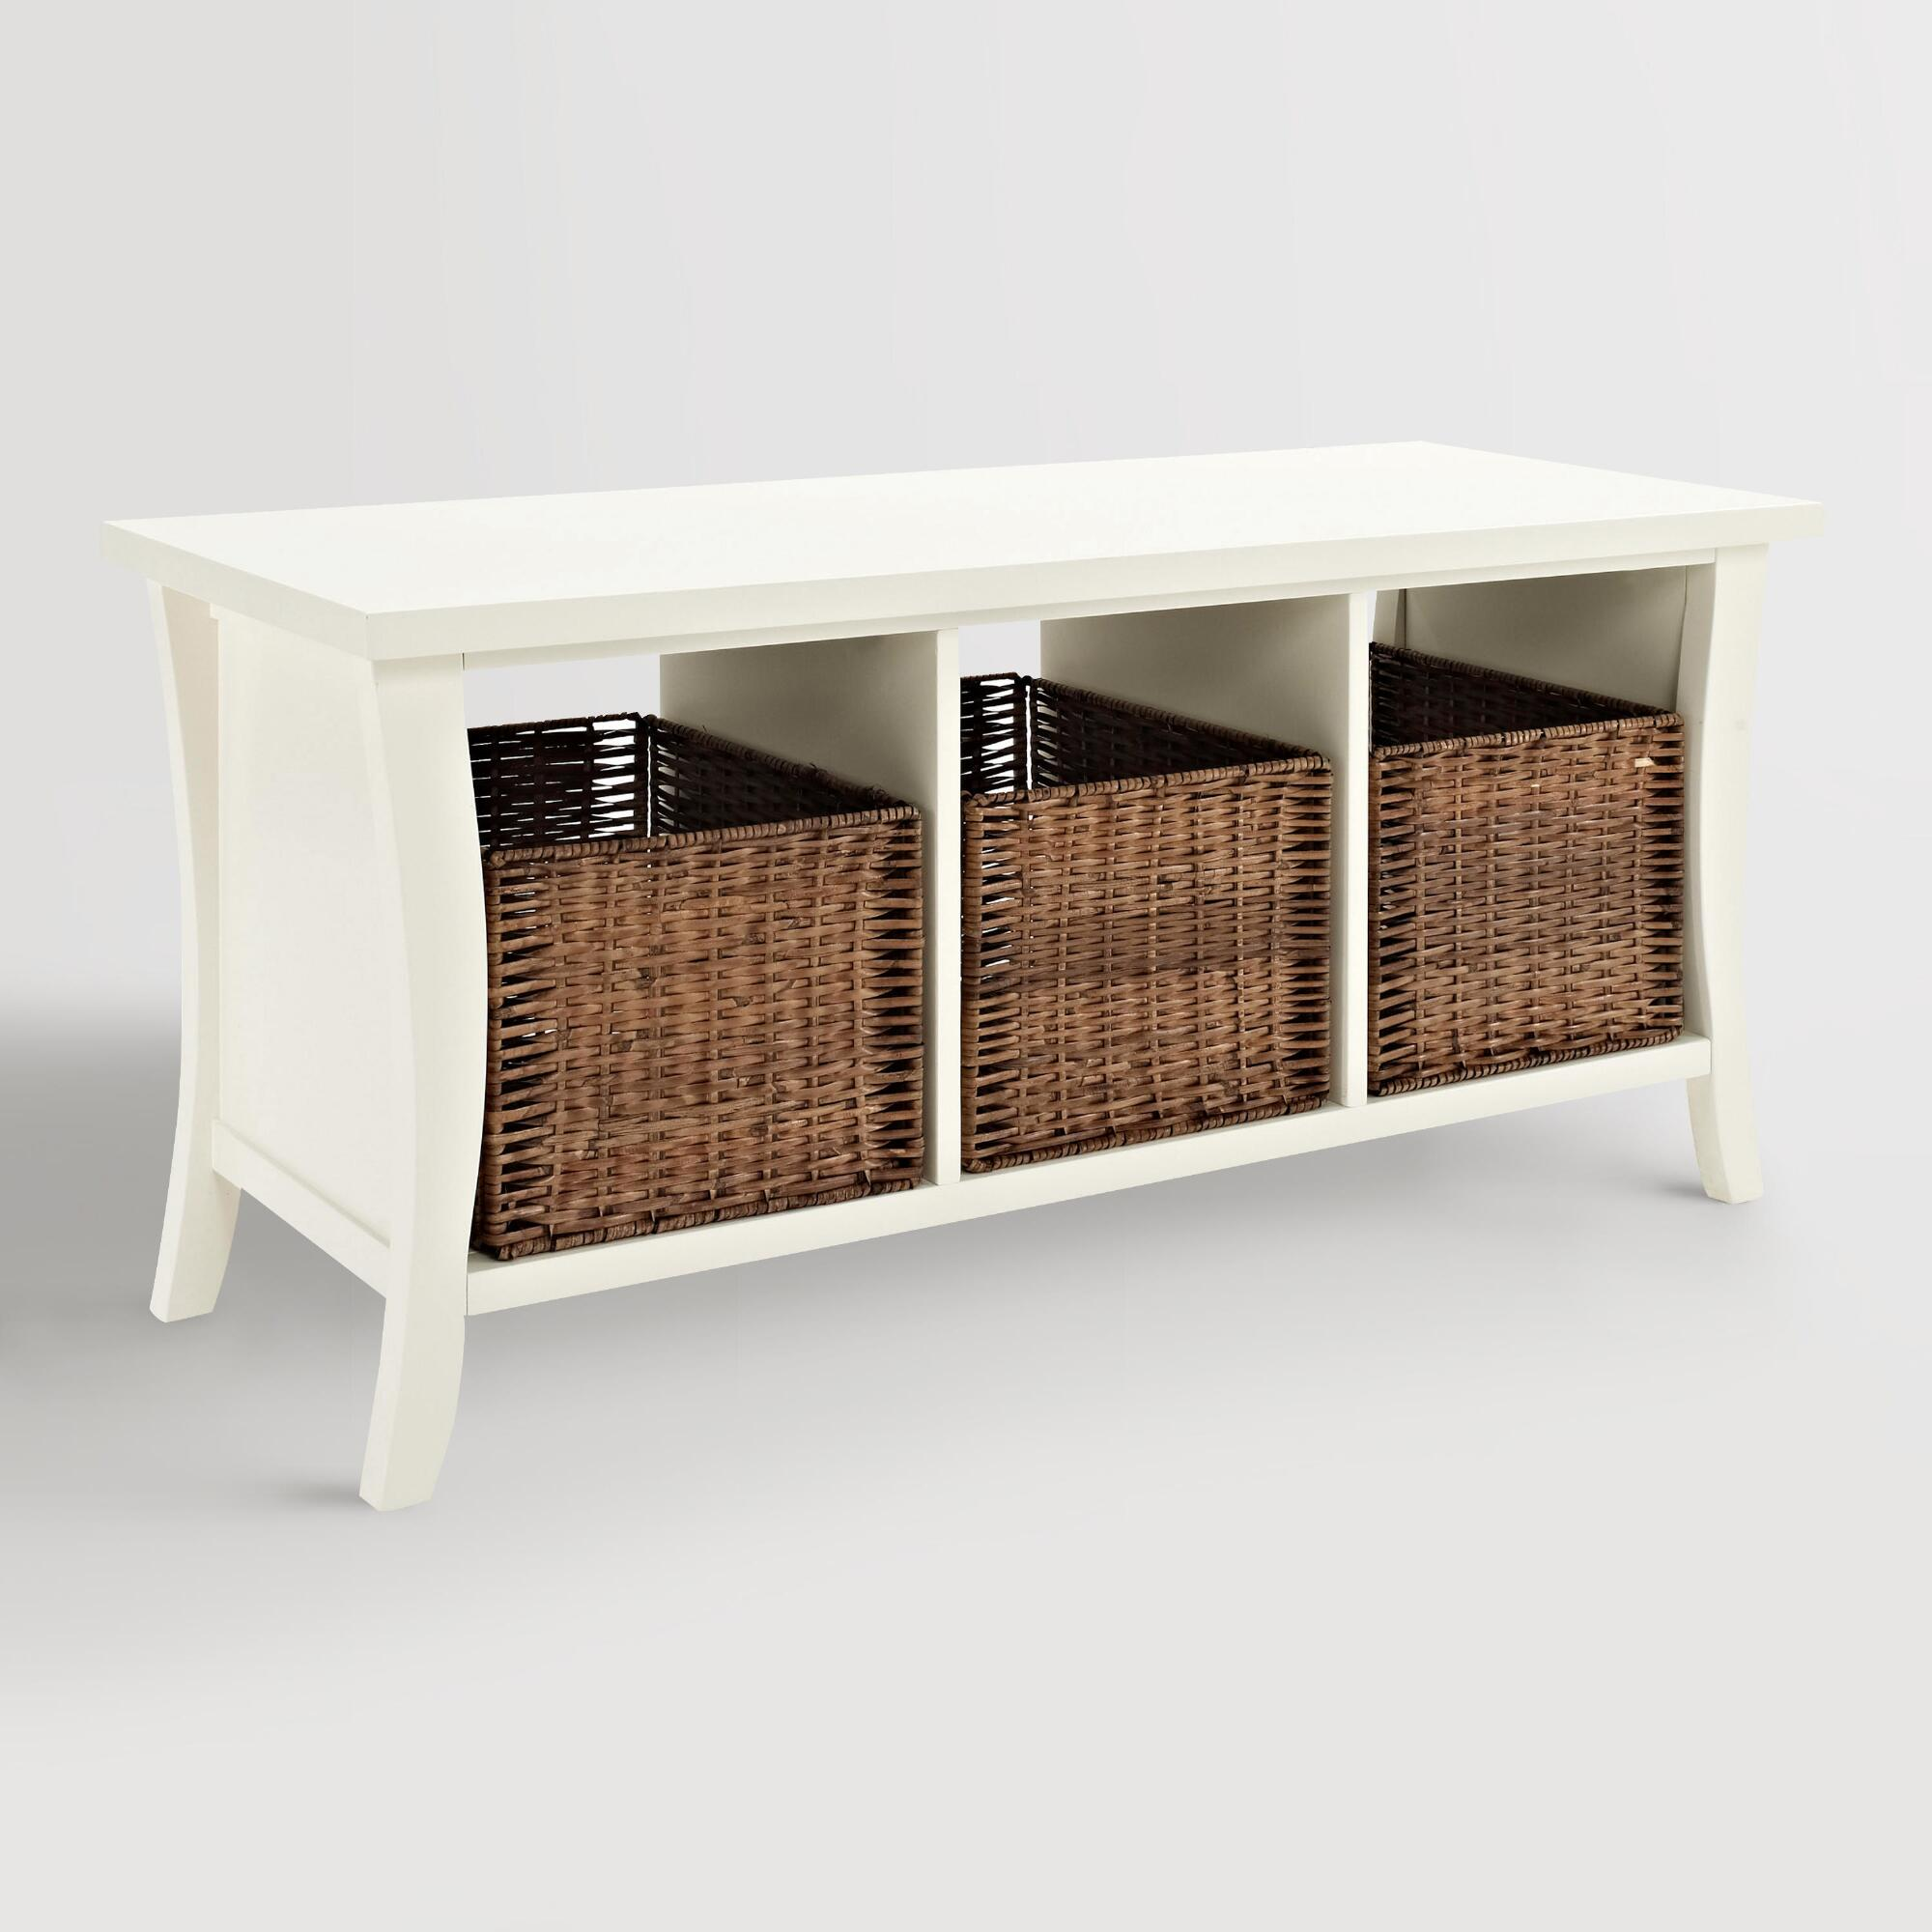 White wood cassia entryway storage bench with baskets world market Bench with baskets